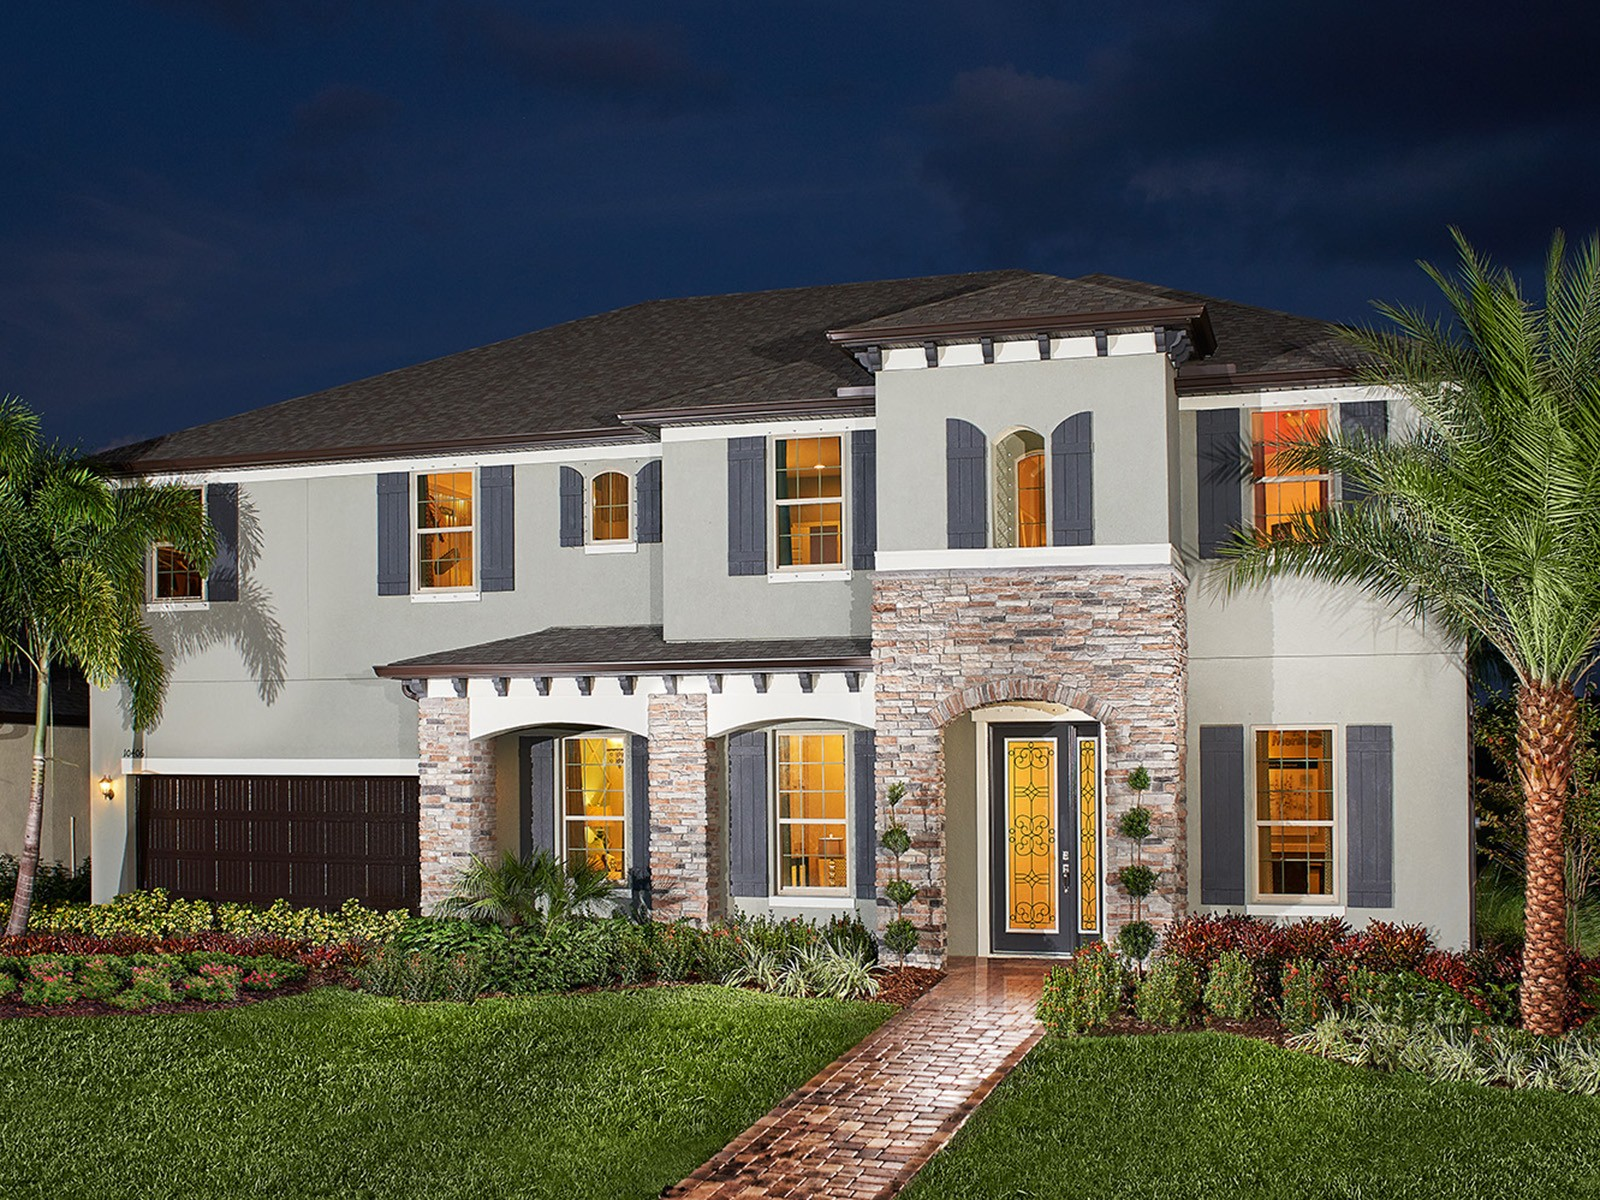 New Homes Tampa Under 200k